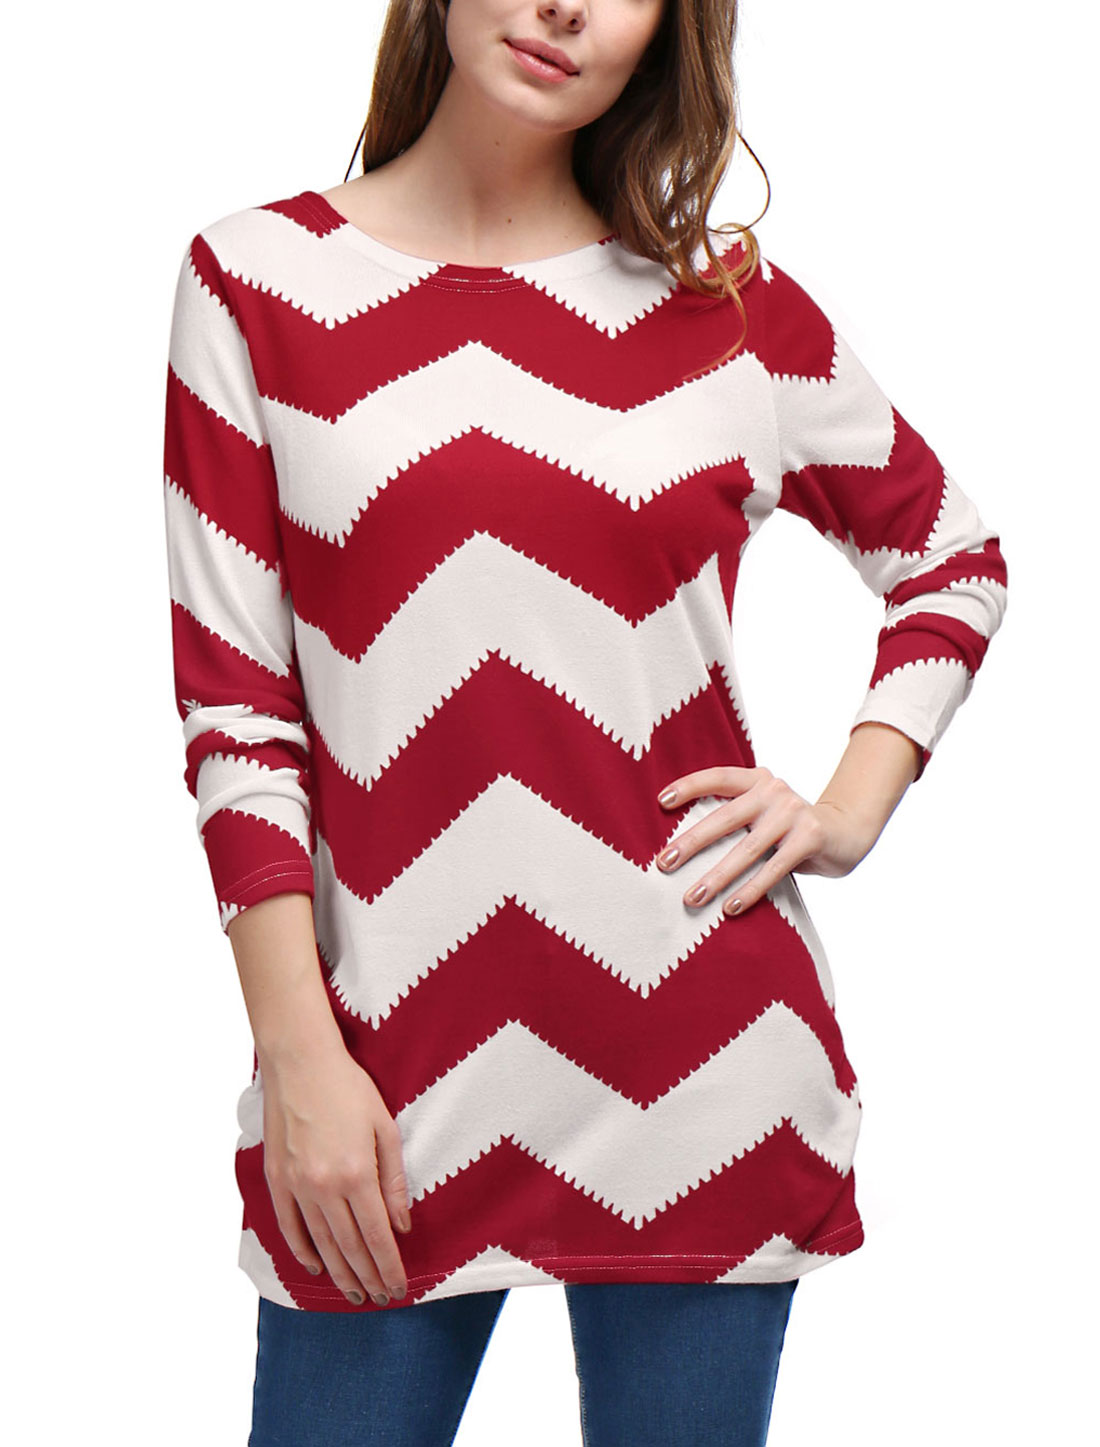 Woman Zig-Zag Pattern Knitted Relax Fit Tunic Top Red White XS